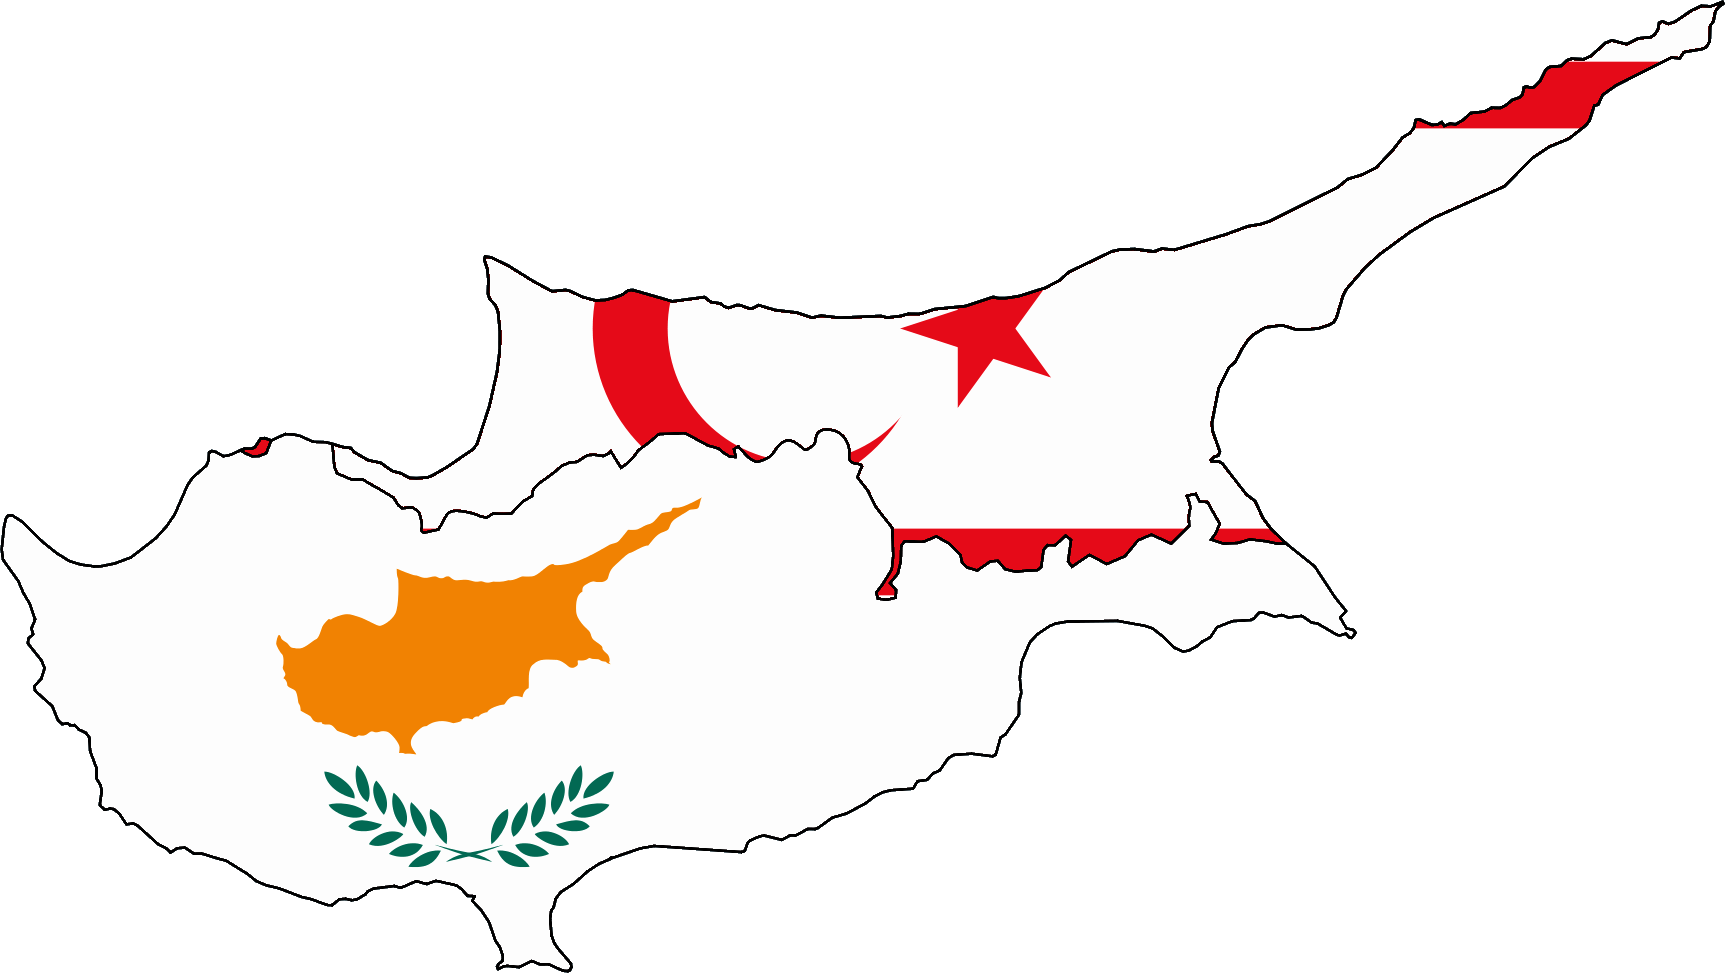 FileFlag map of Cyprus and Turkish Northern Cypruspng Wikimedia